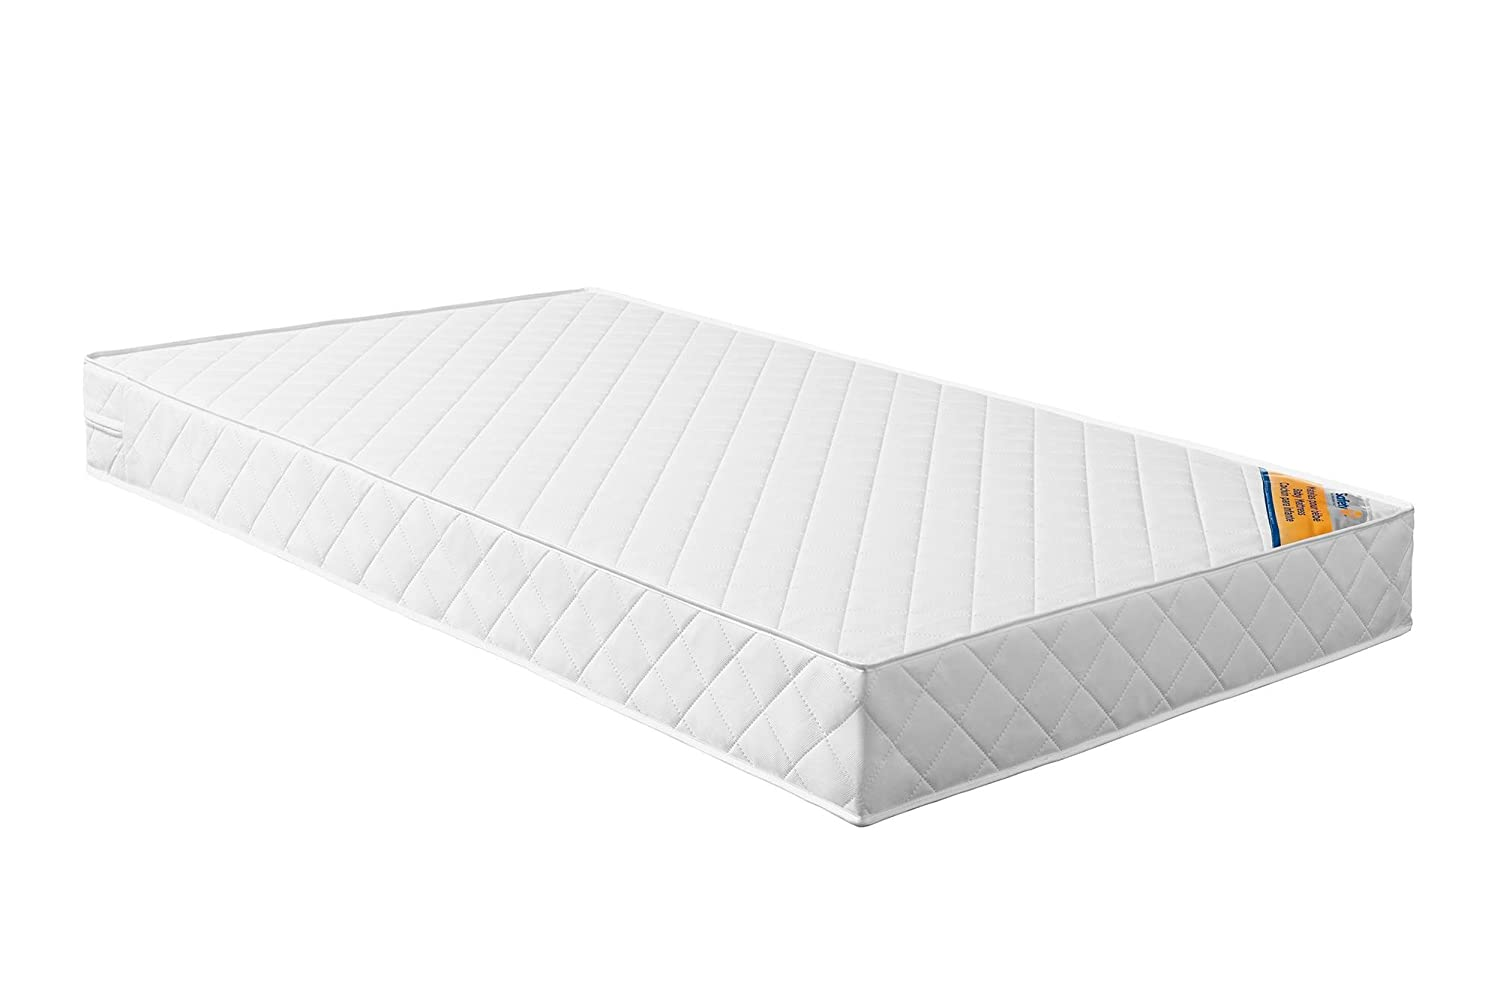 Safety 1st Grow with Me 2-in-1 Mattress 5428096